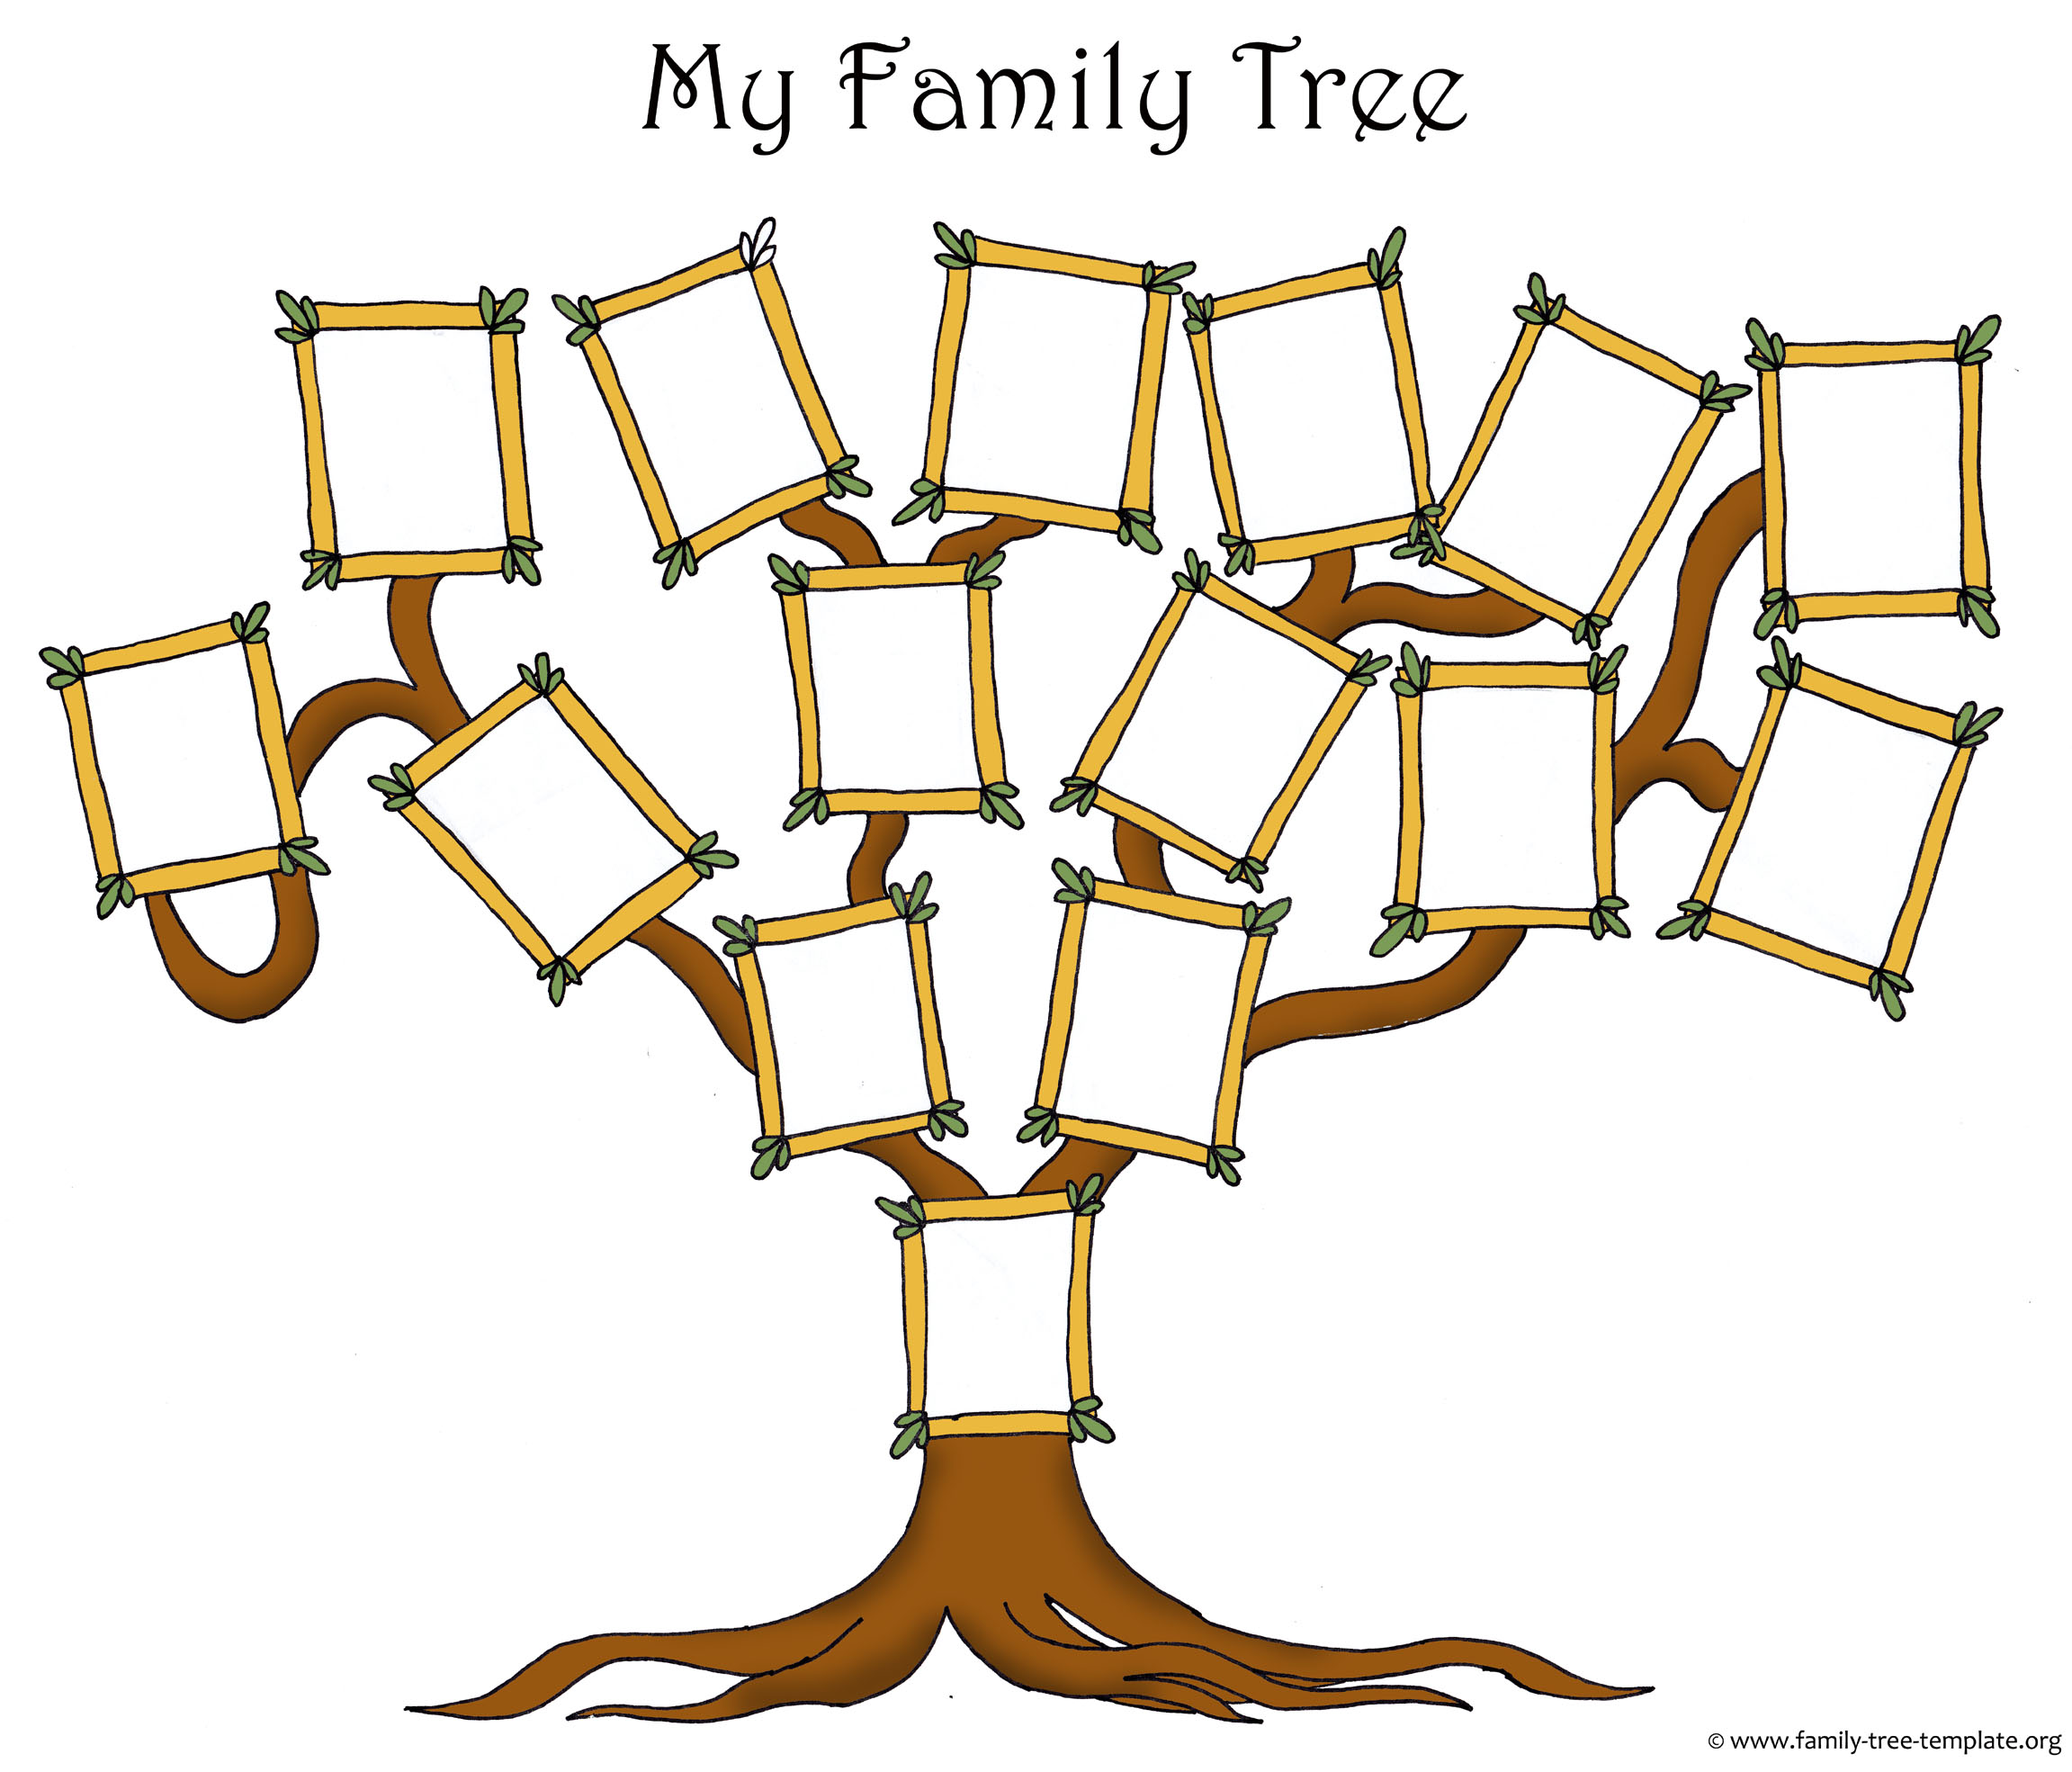 image relating to Tree Template Printable called Totally free Household Tree Template Programs for Producing Ancestry Charts